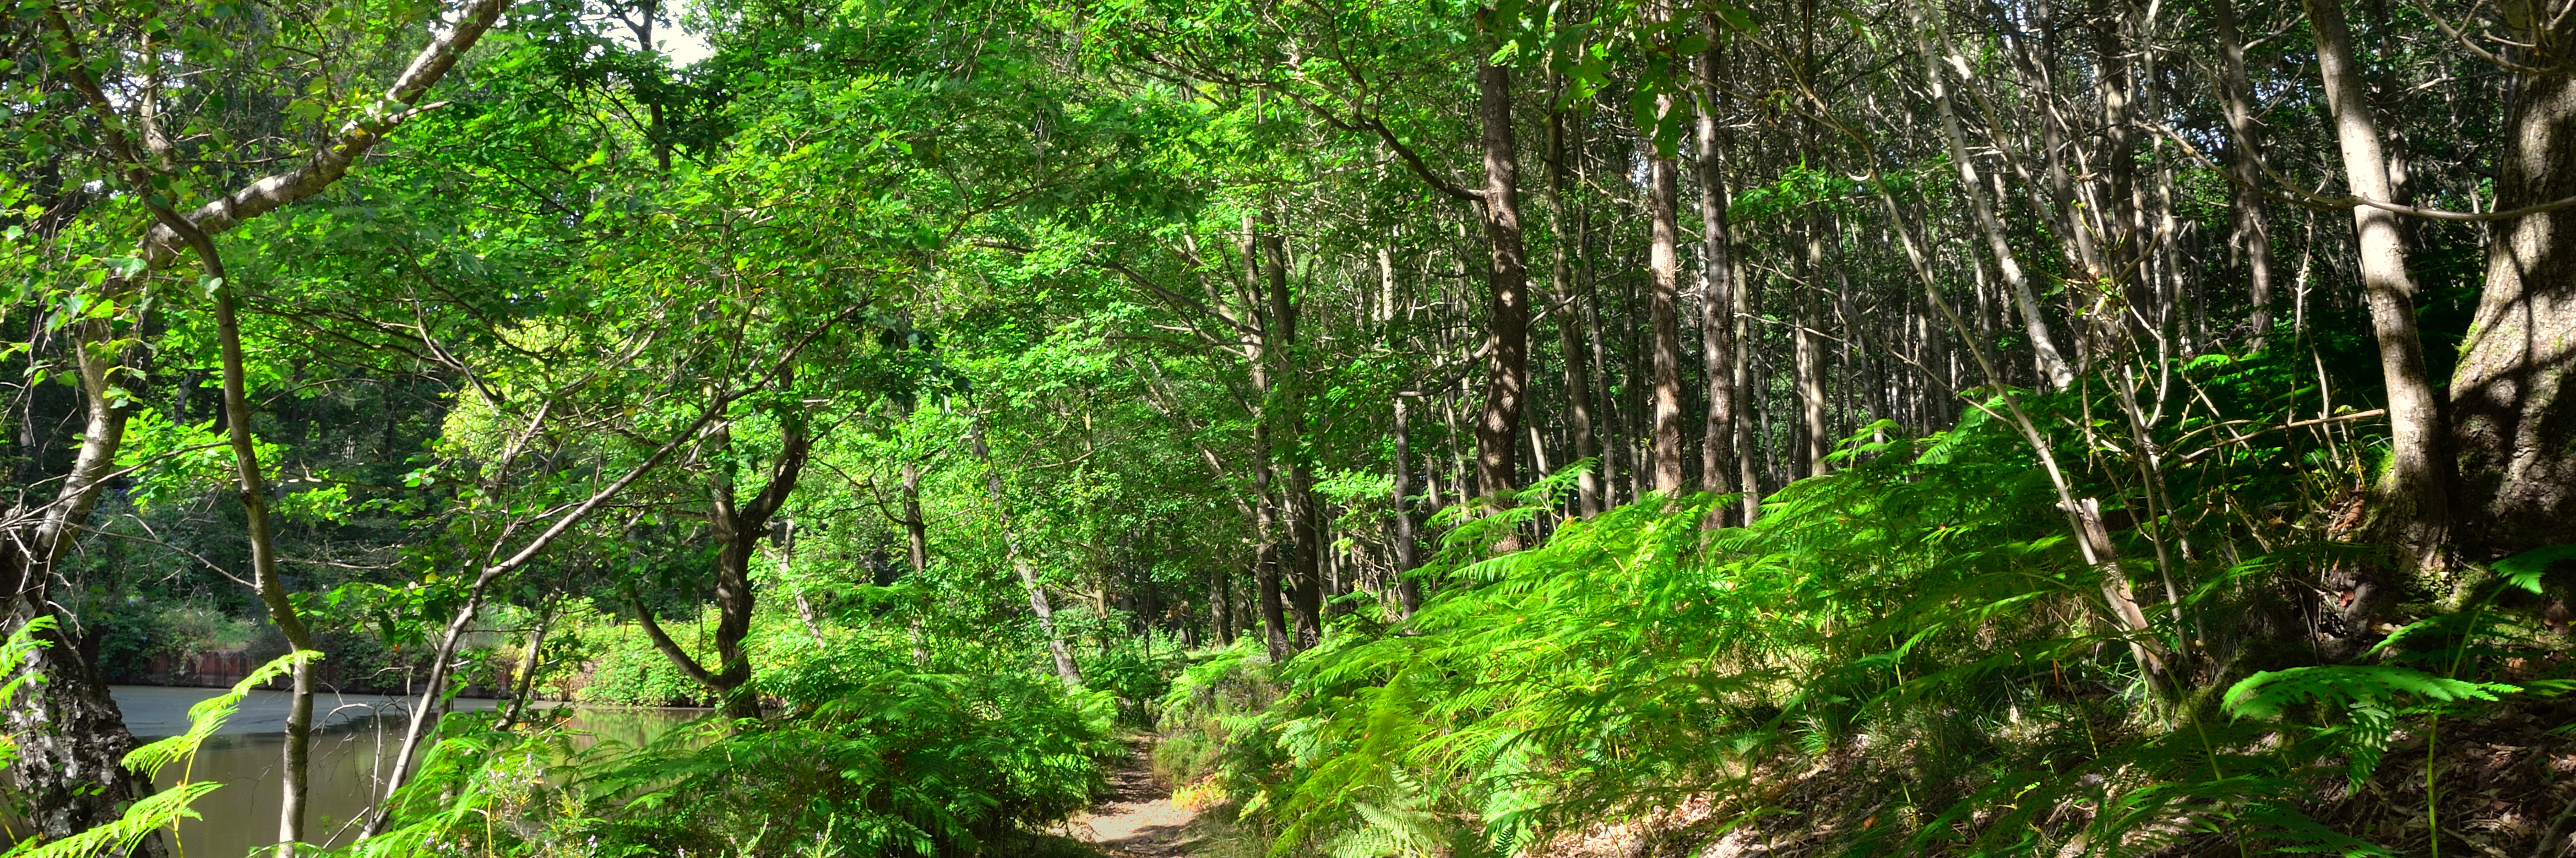 Welcome to the beautiful Wyre Forest!